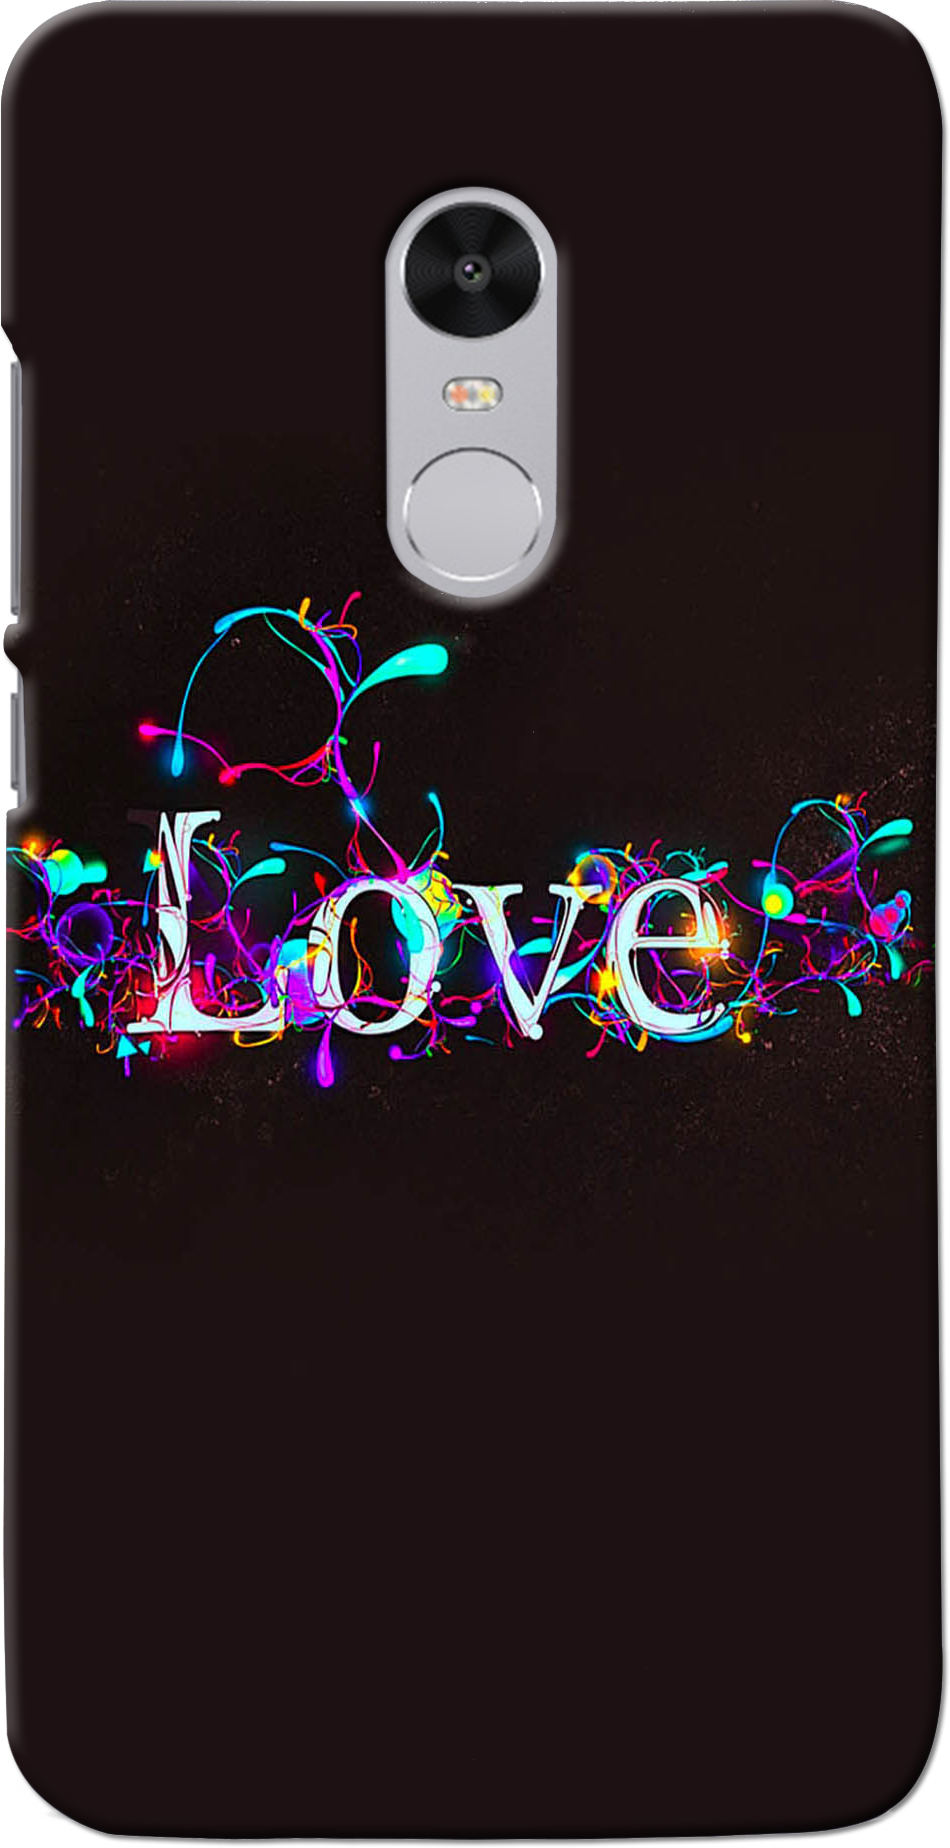 bajajequipments Mobile Cover For Redmi Note4?.. 75